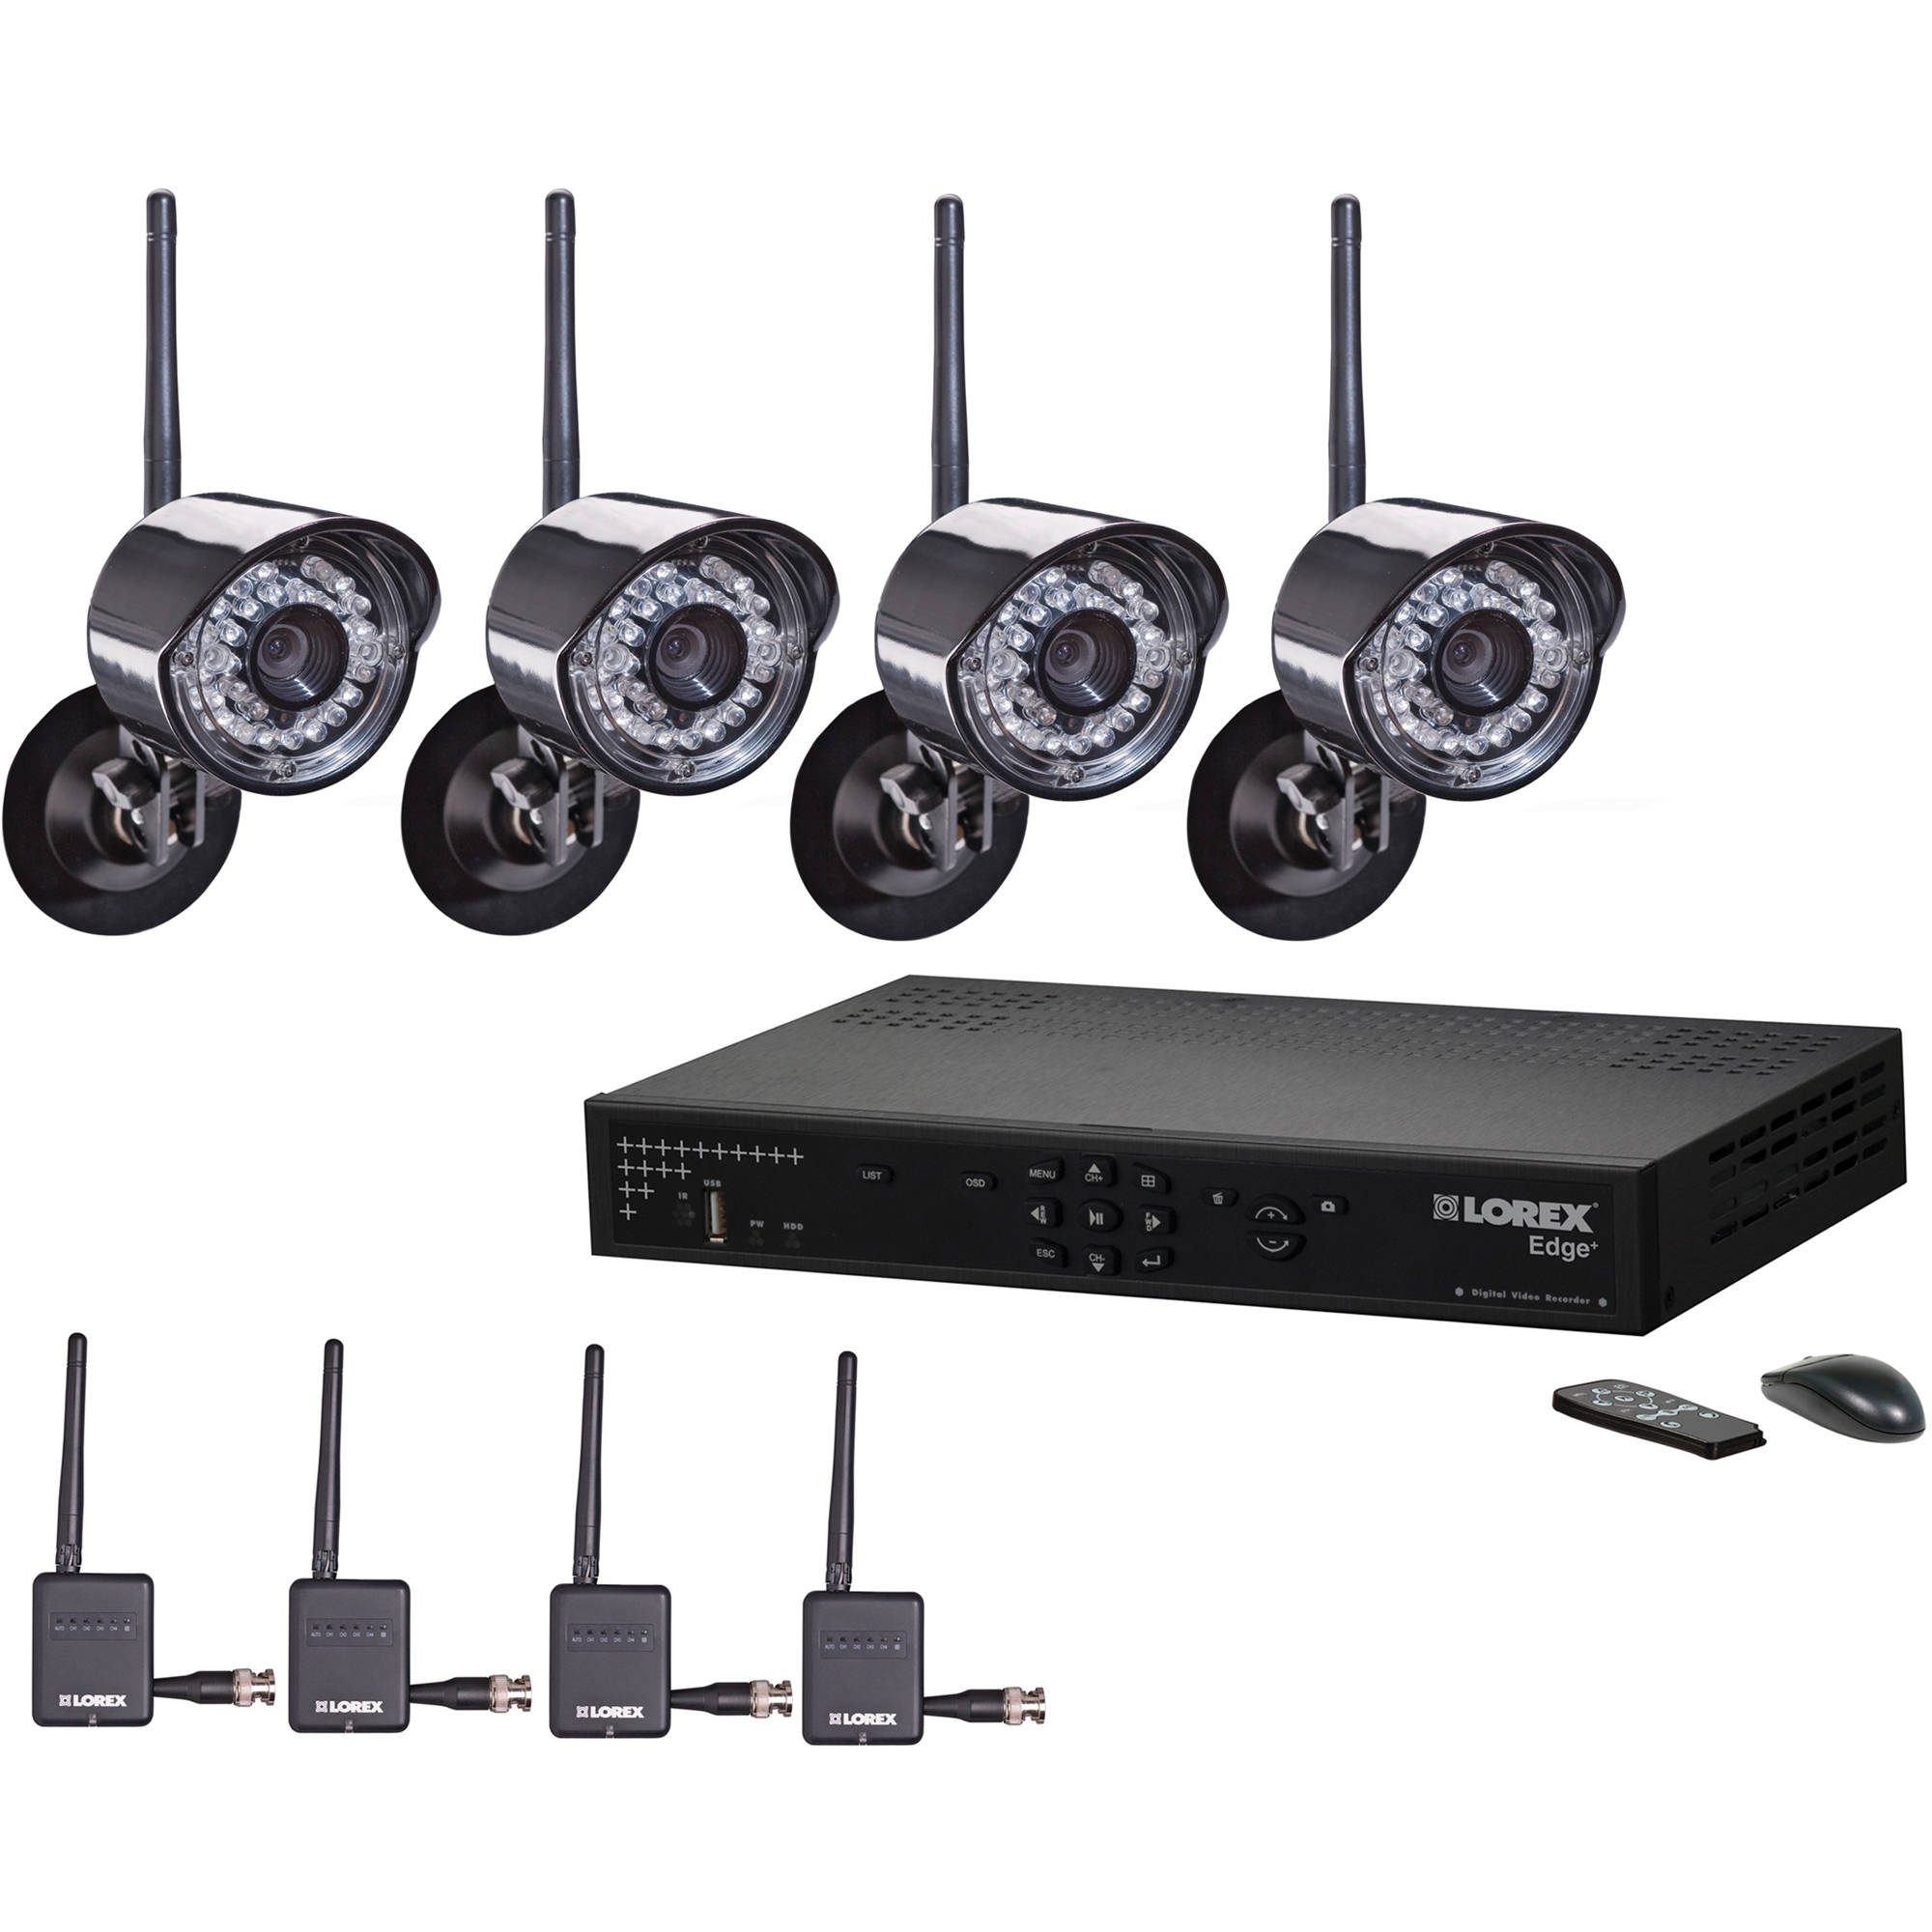 4K HD security cameras, p wireless cameras and 4K IP NVR systems on saleSave 25% + Free Shipping · Huge Cyber Week Sale · Free day Returns · 24/7 Recording.